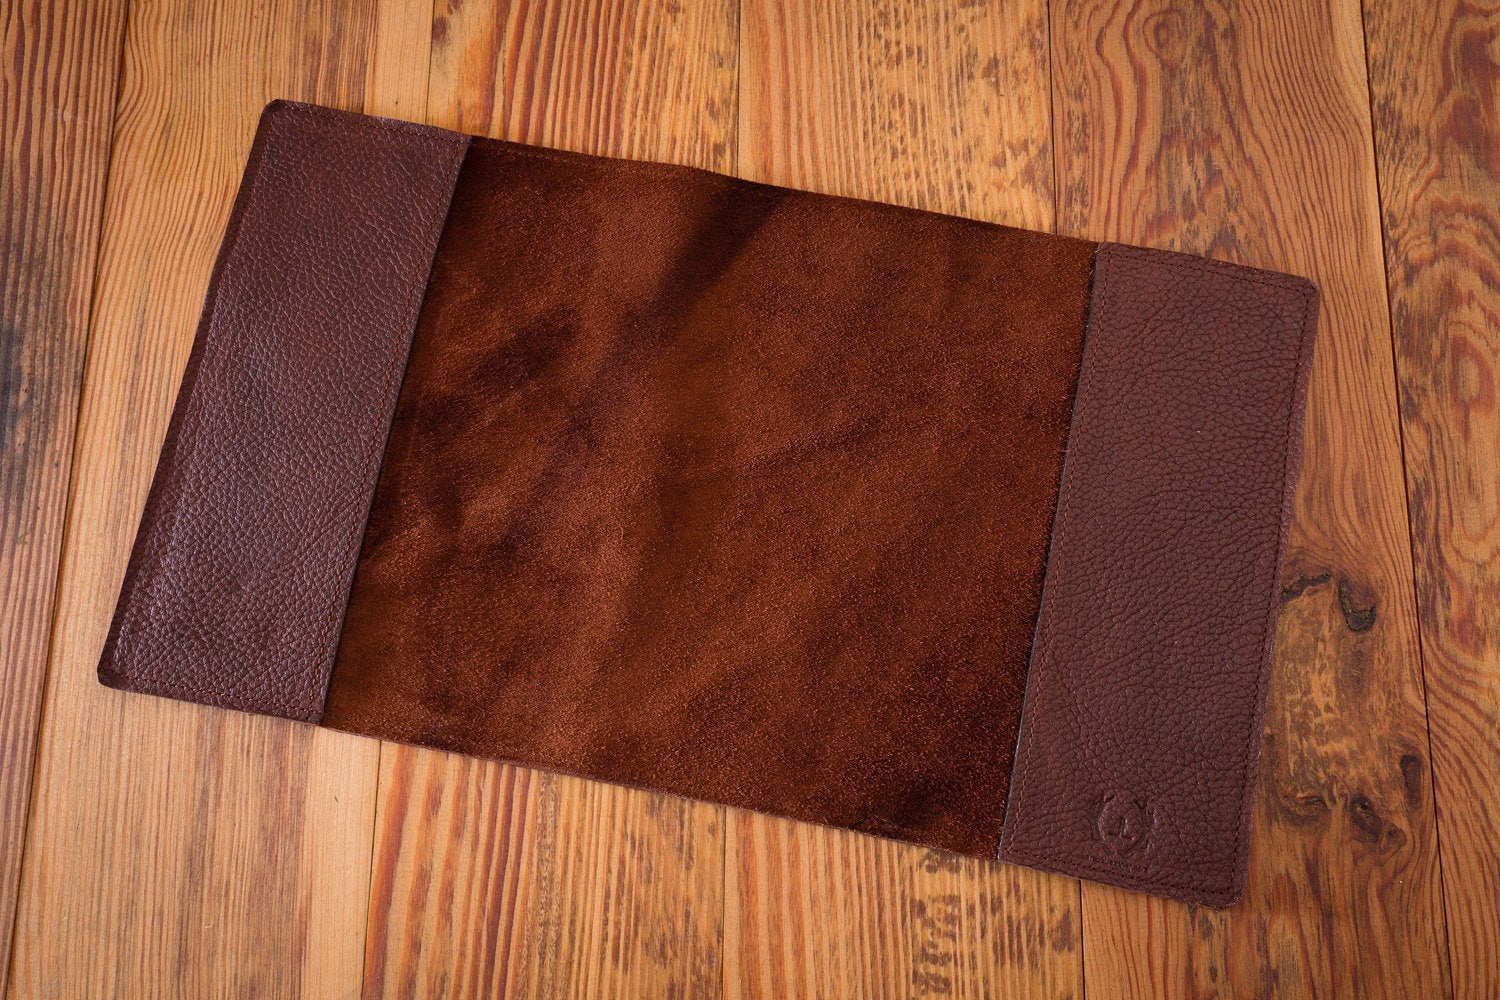 Leather Bible Cover, Leather Book Cover, Leather Cover No 8